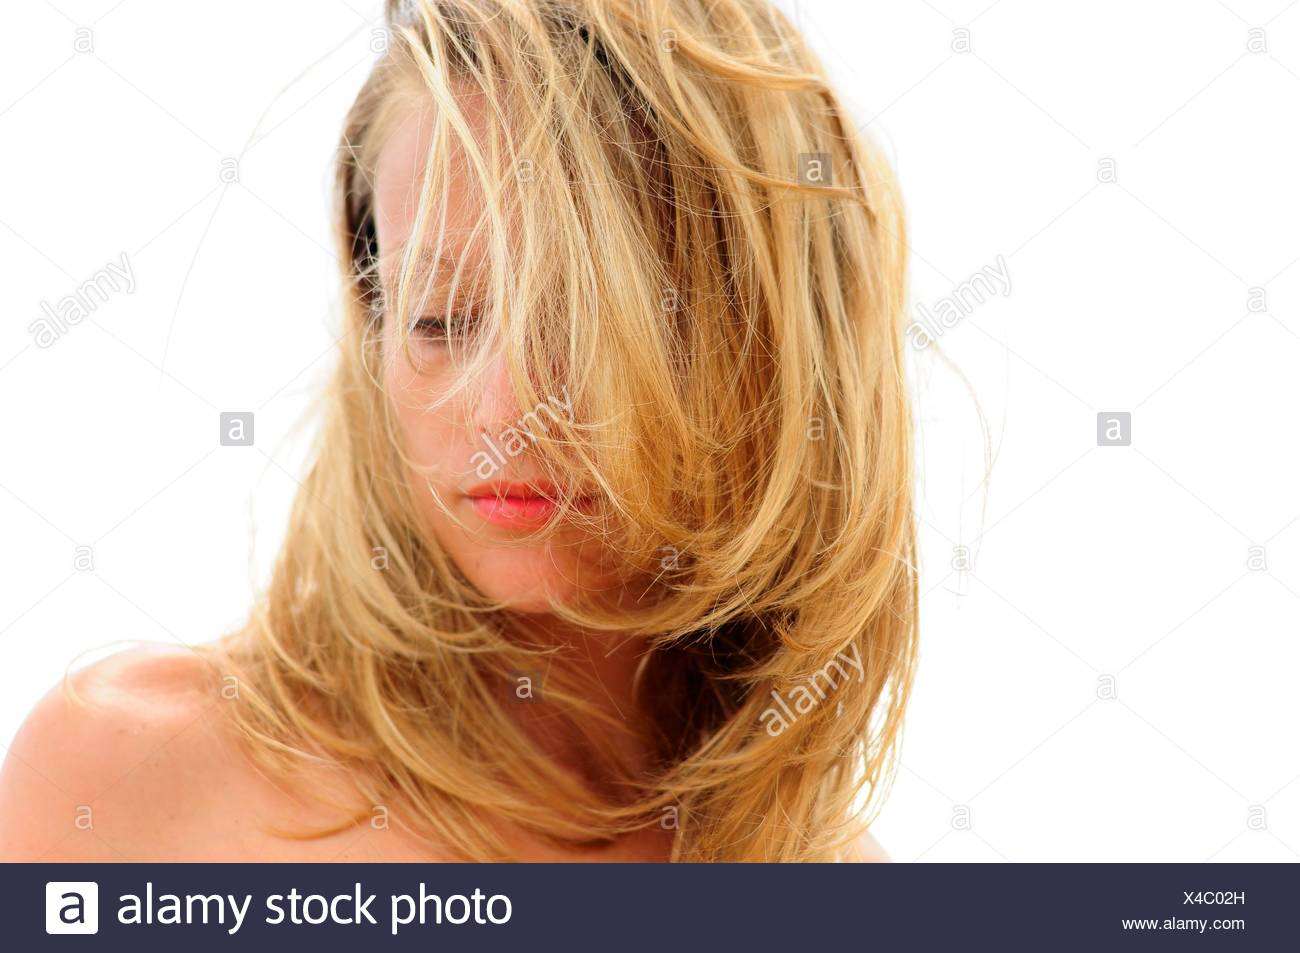 Woman with hair covering face - Stock Image